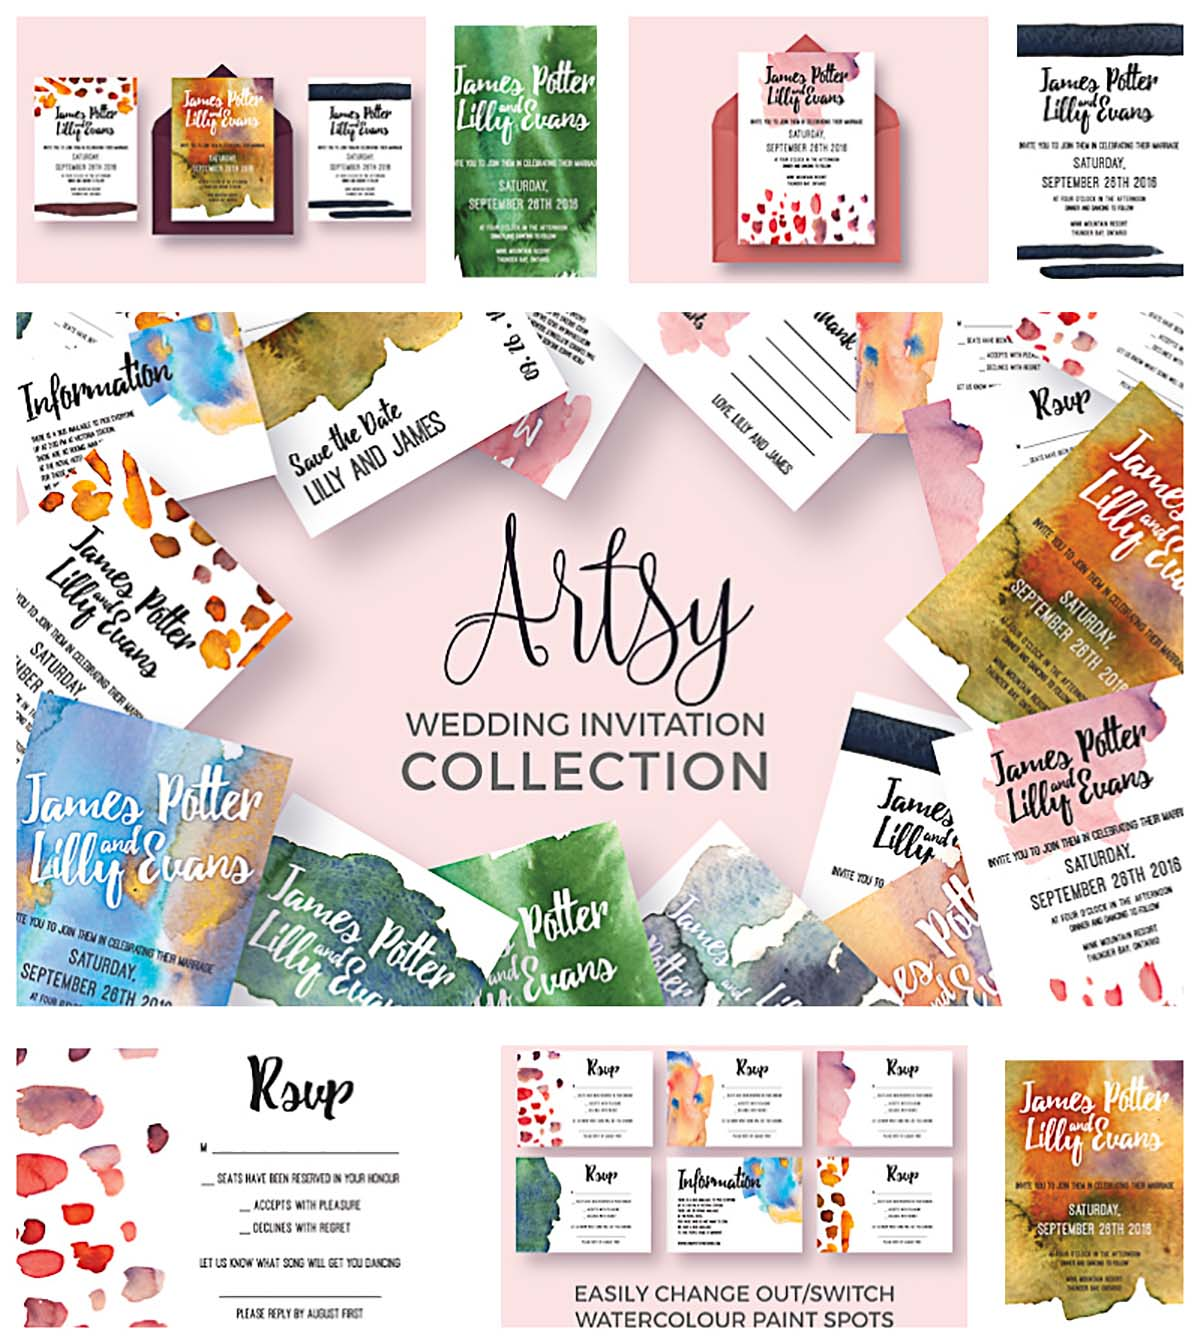 Colorful wedding invitation collection